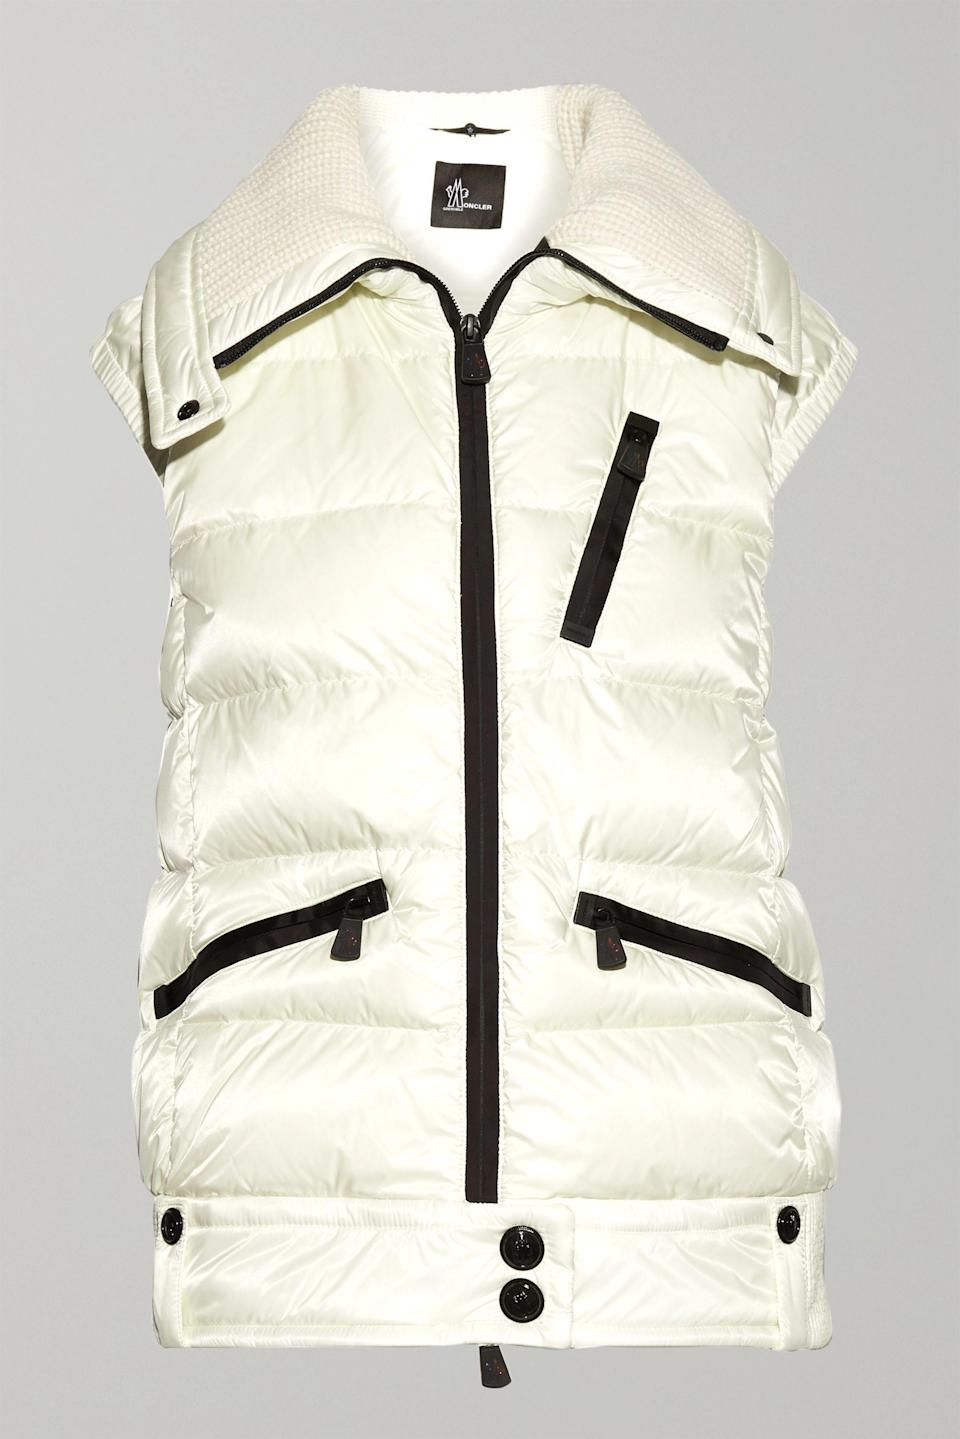 "<p><strong>Moncler Grenoble</strong></p><p>net-a-porter.com</p><p><strong>$1295.00</strong></p><p><a href=""https://go.redirectingat.com?id=74968X1596630&url=https%3A%2F%2Fwww.net-a-porter.com%2Fen-us%2Fshop%2Fproduct%2Fmoncler-grenoble%2Fles-bains-quilted-down-vest%2F920353&sref=https%3A%2F%2Fwww.townandcountrymag.com%2Fstyle%2Ffashion-trends%2Fg13532208%2Fwhat-to-wear-skiing%2F"" rel=""nofollow noopener"" target=""_blank"" data-ylk=""slk:Shop Now"" class=""link rapid-noclick-resp"">Shop Now</a></p><p>Ditch your down coat, but stay toasty with a white quilted down vest. </p>"